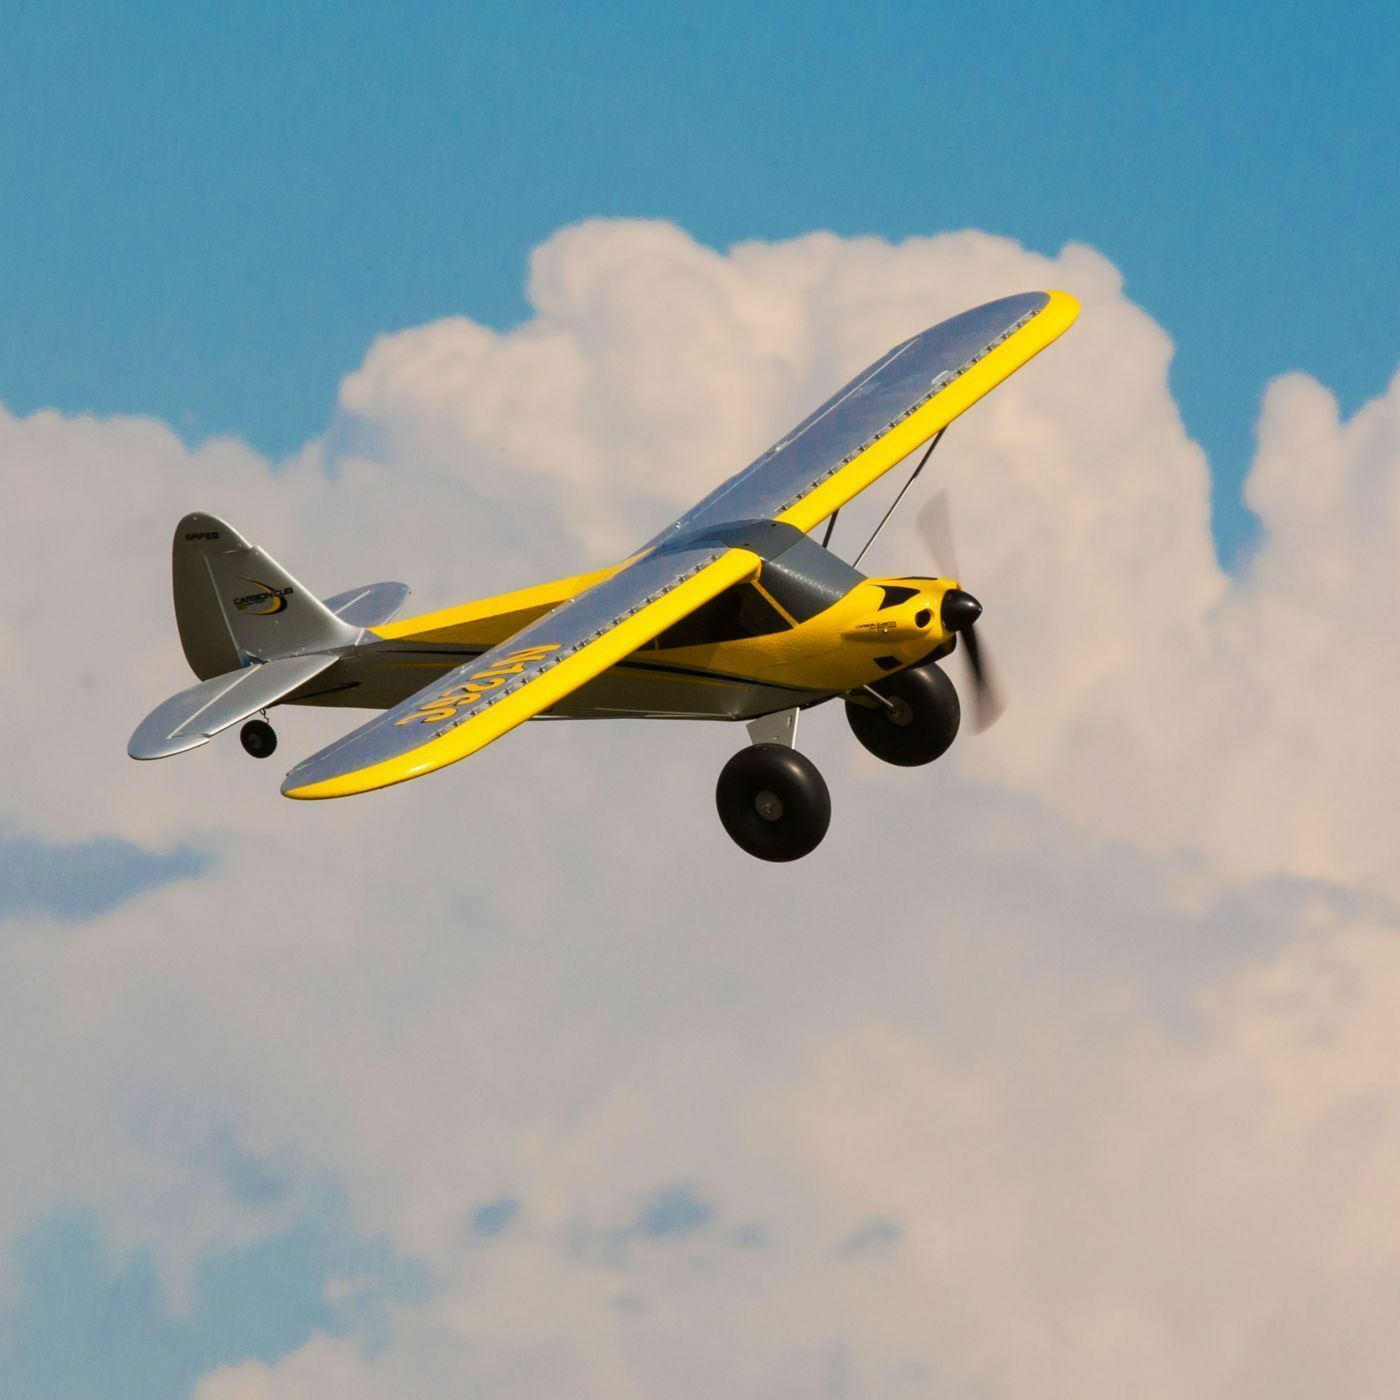 Carbon Cub S+ 1.3m Ready to Fly R C Airplane by HobbyZone HBZ3200